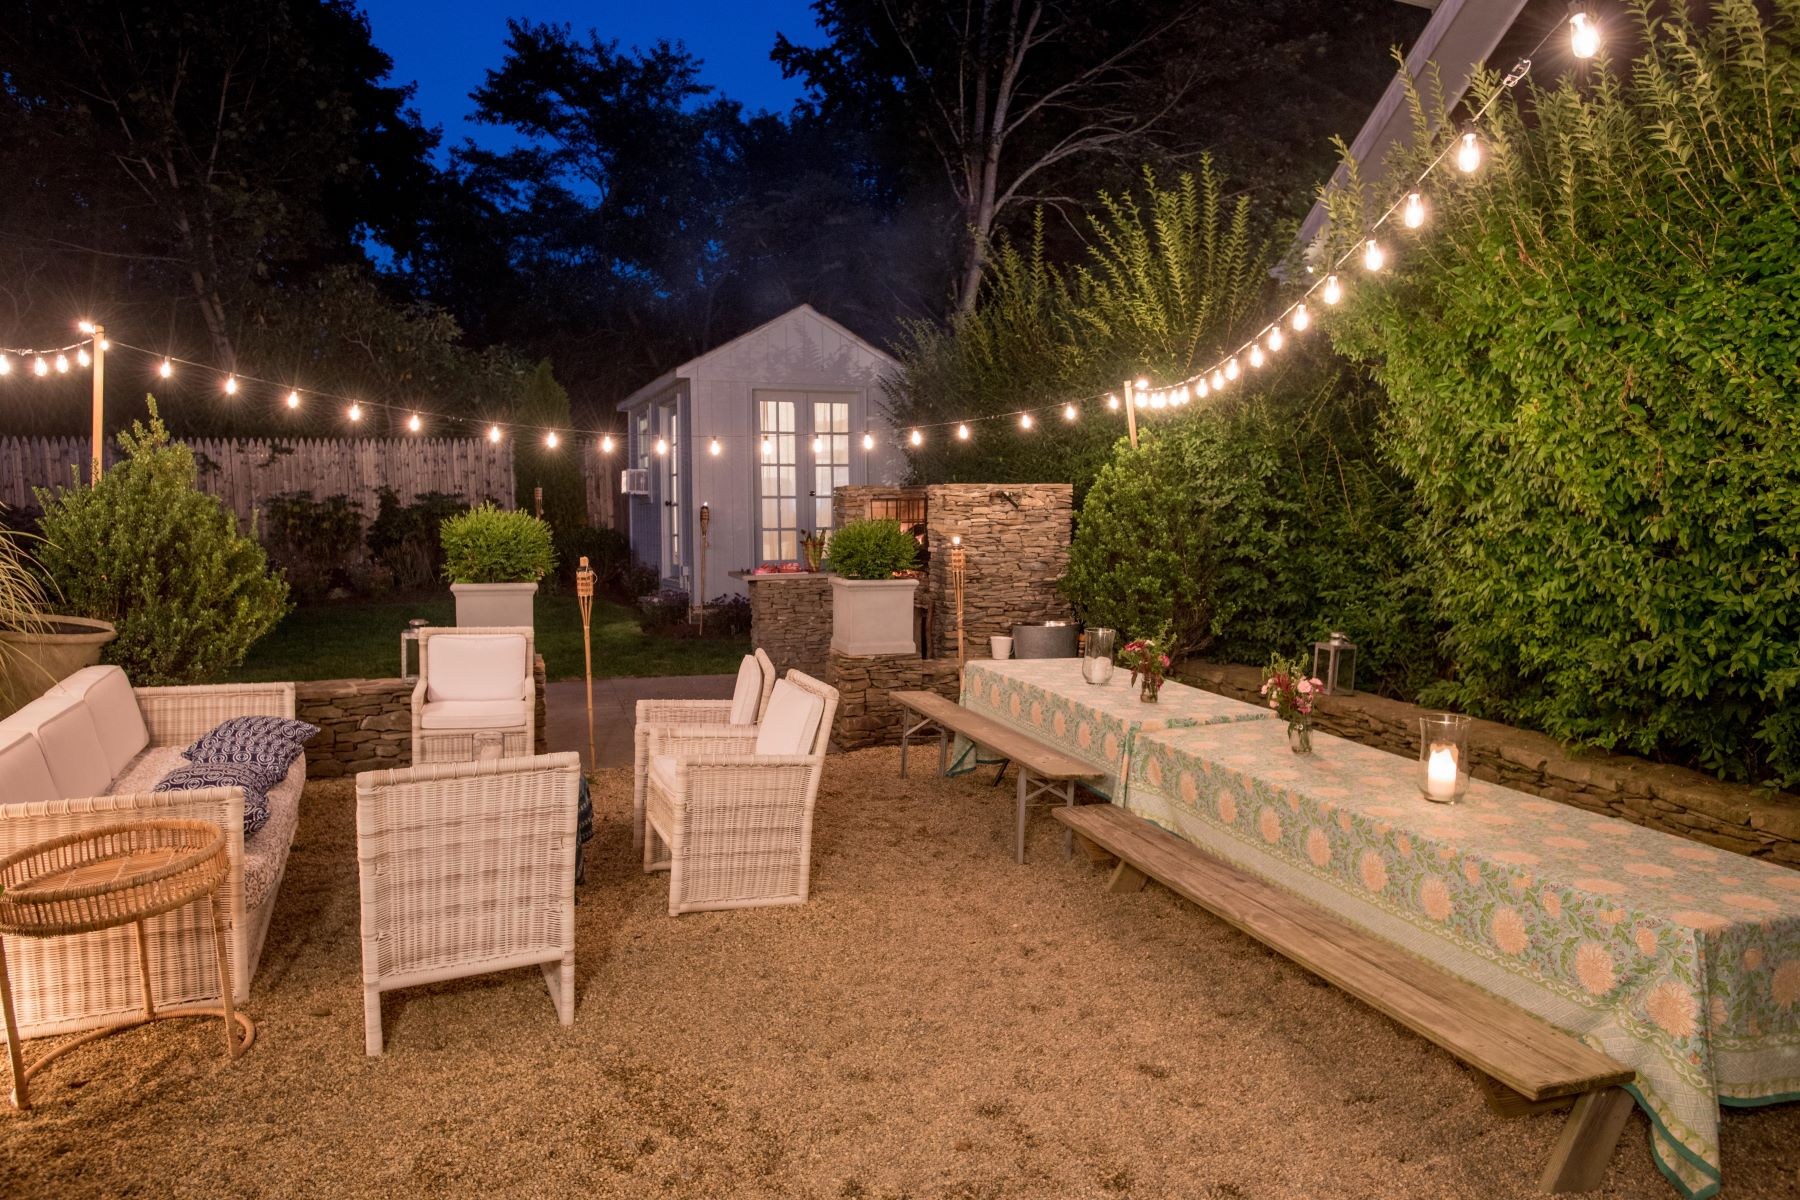 Additional photo for property listing at Delightful Newport Residence 88 Coggeshall Avenue Newport, Rhode Island 02840 United States